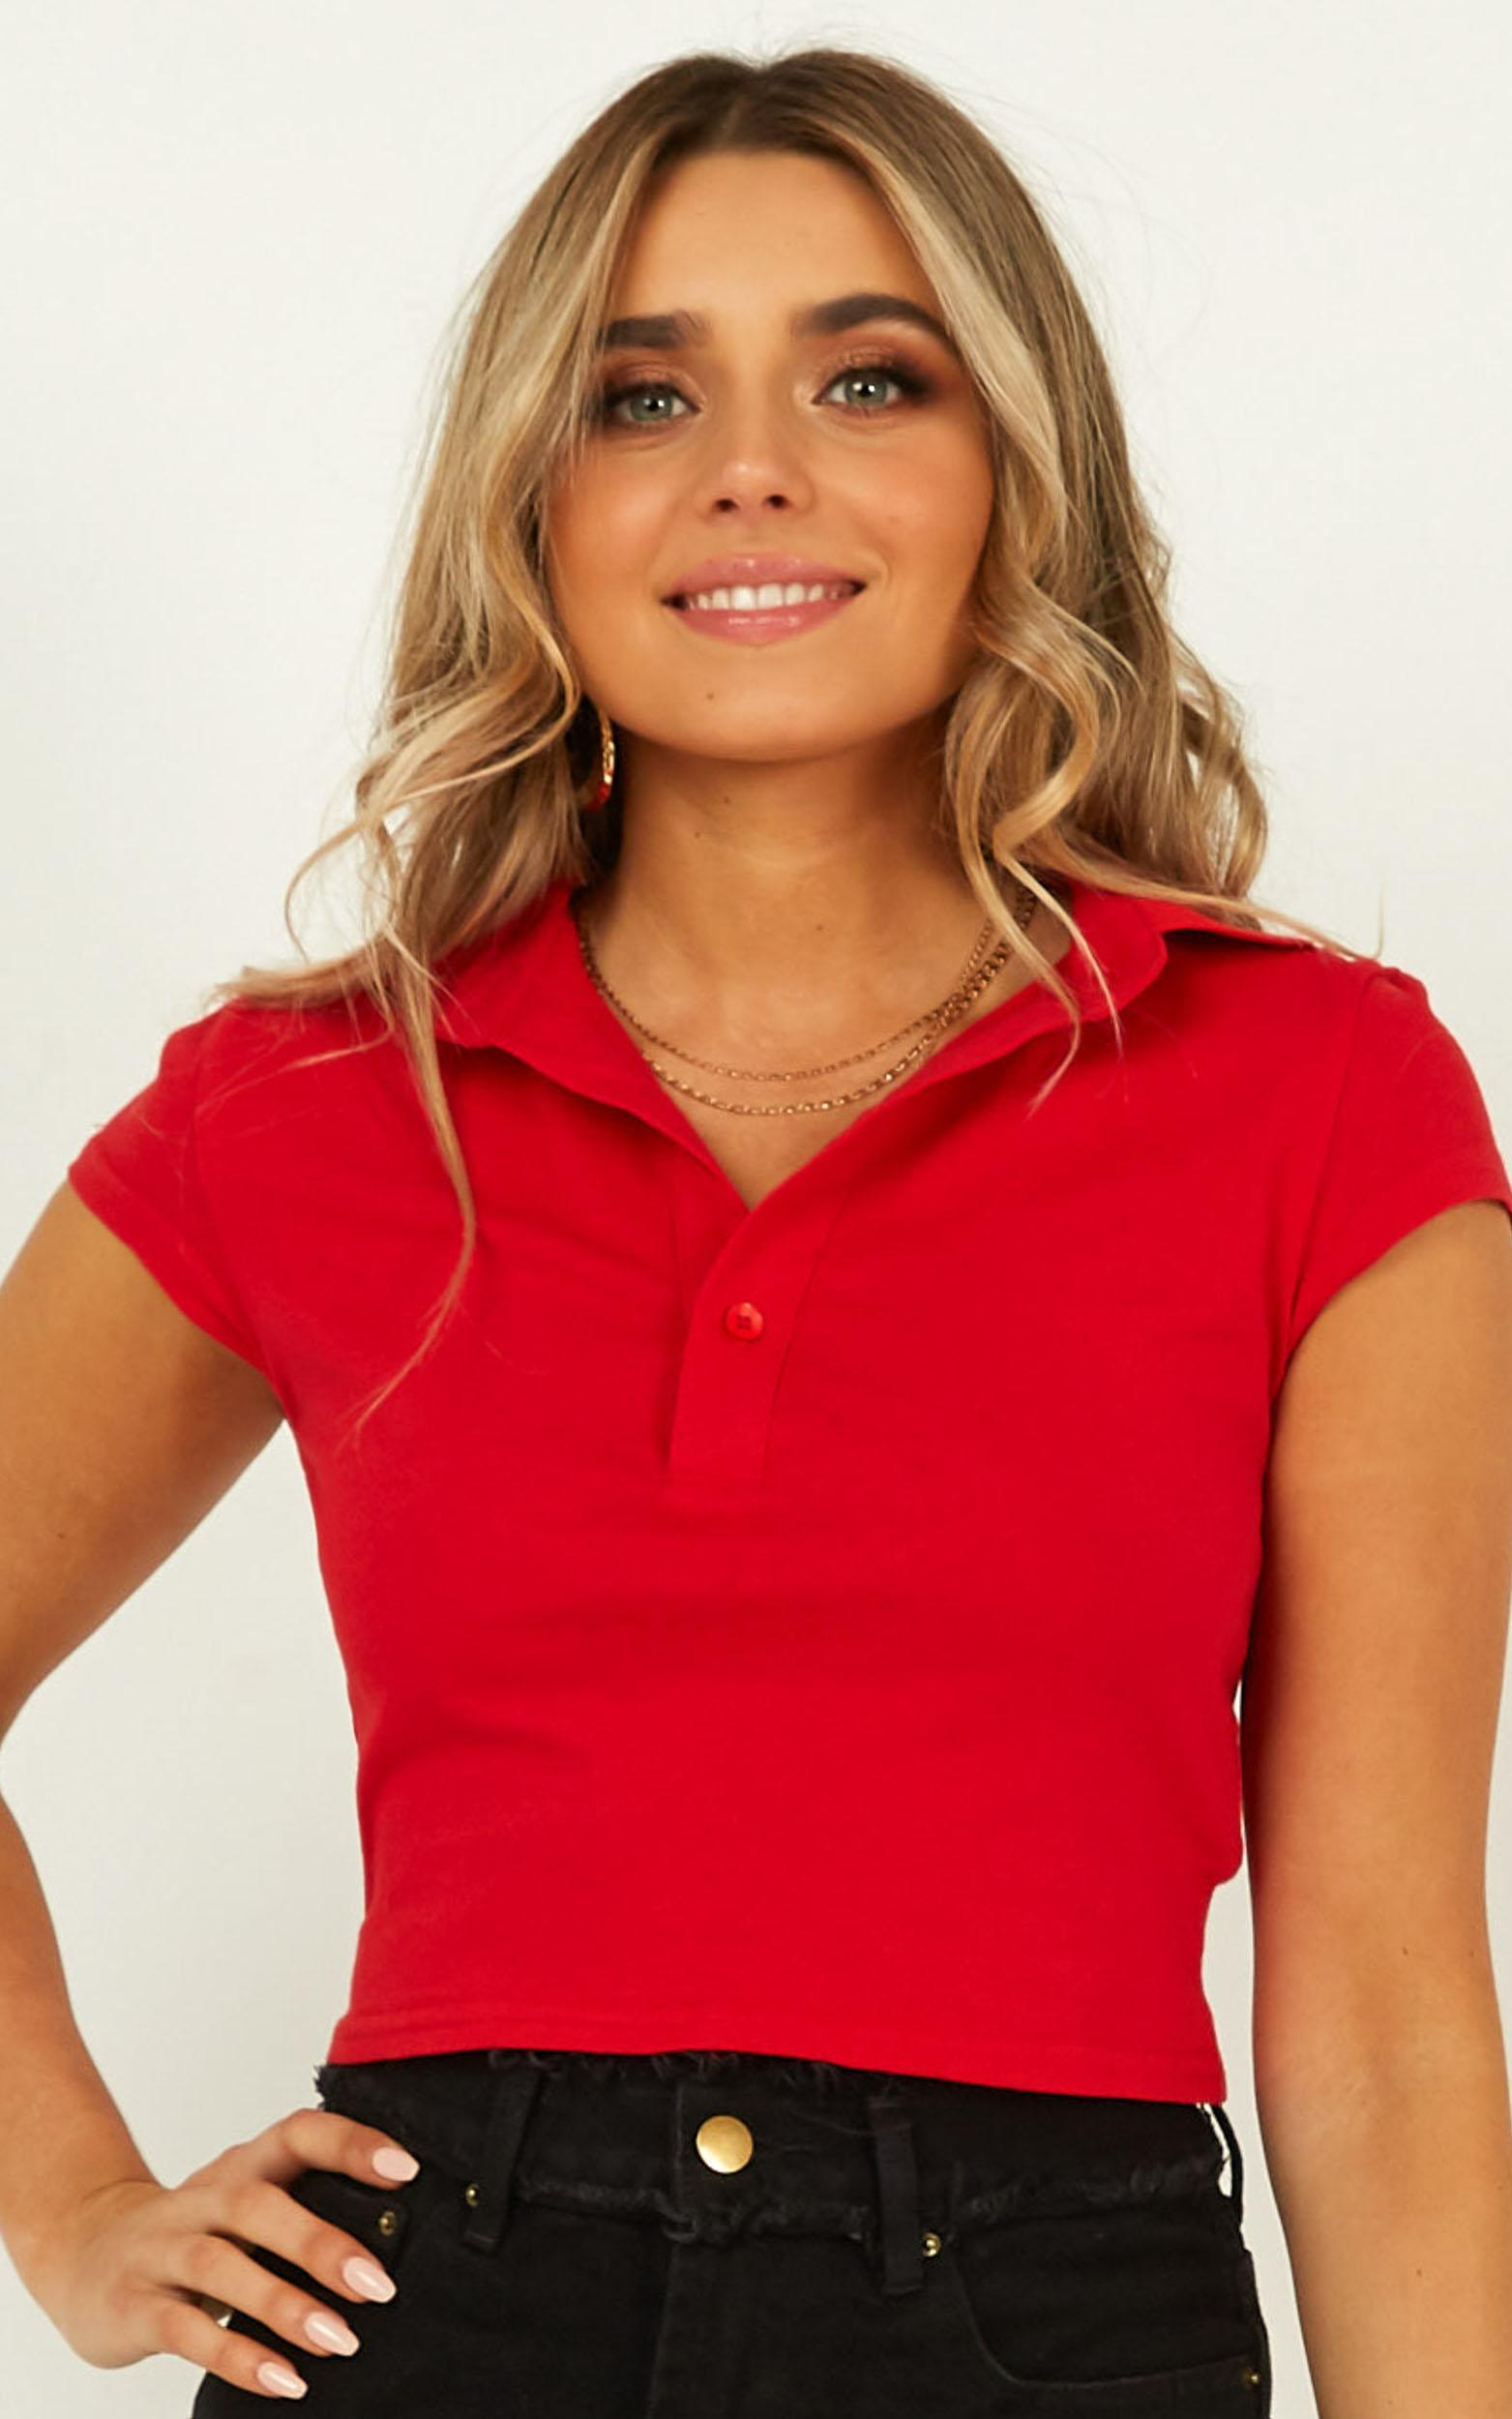 Just Like Me Top in red - 20 (XXXXL), Red, hi-res image number null